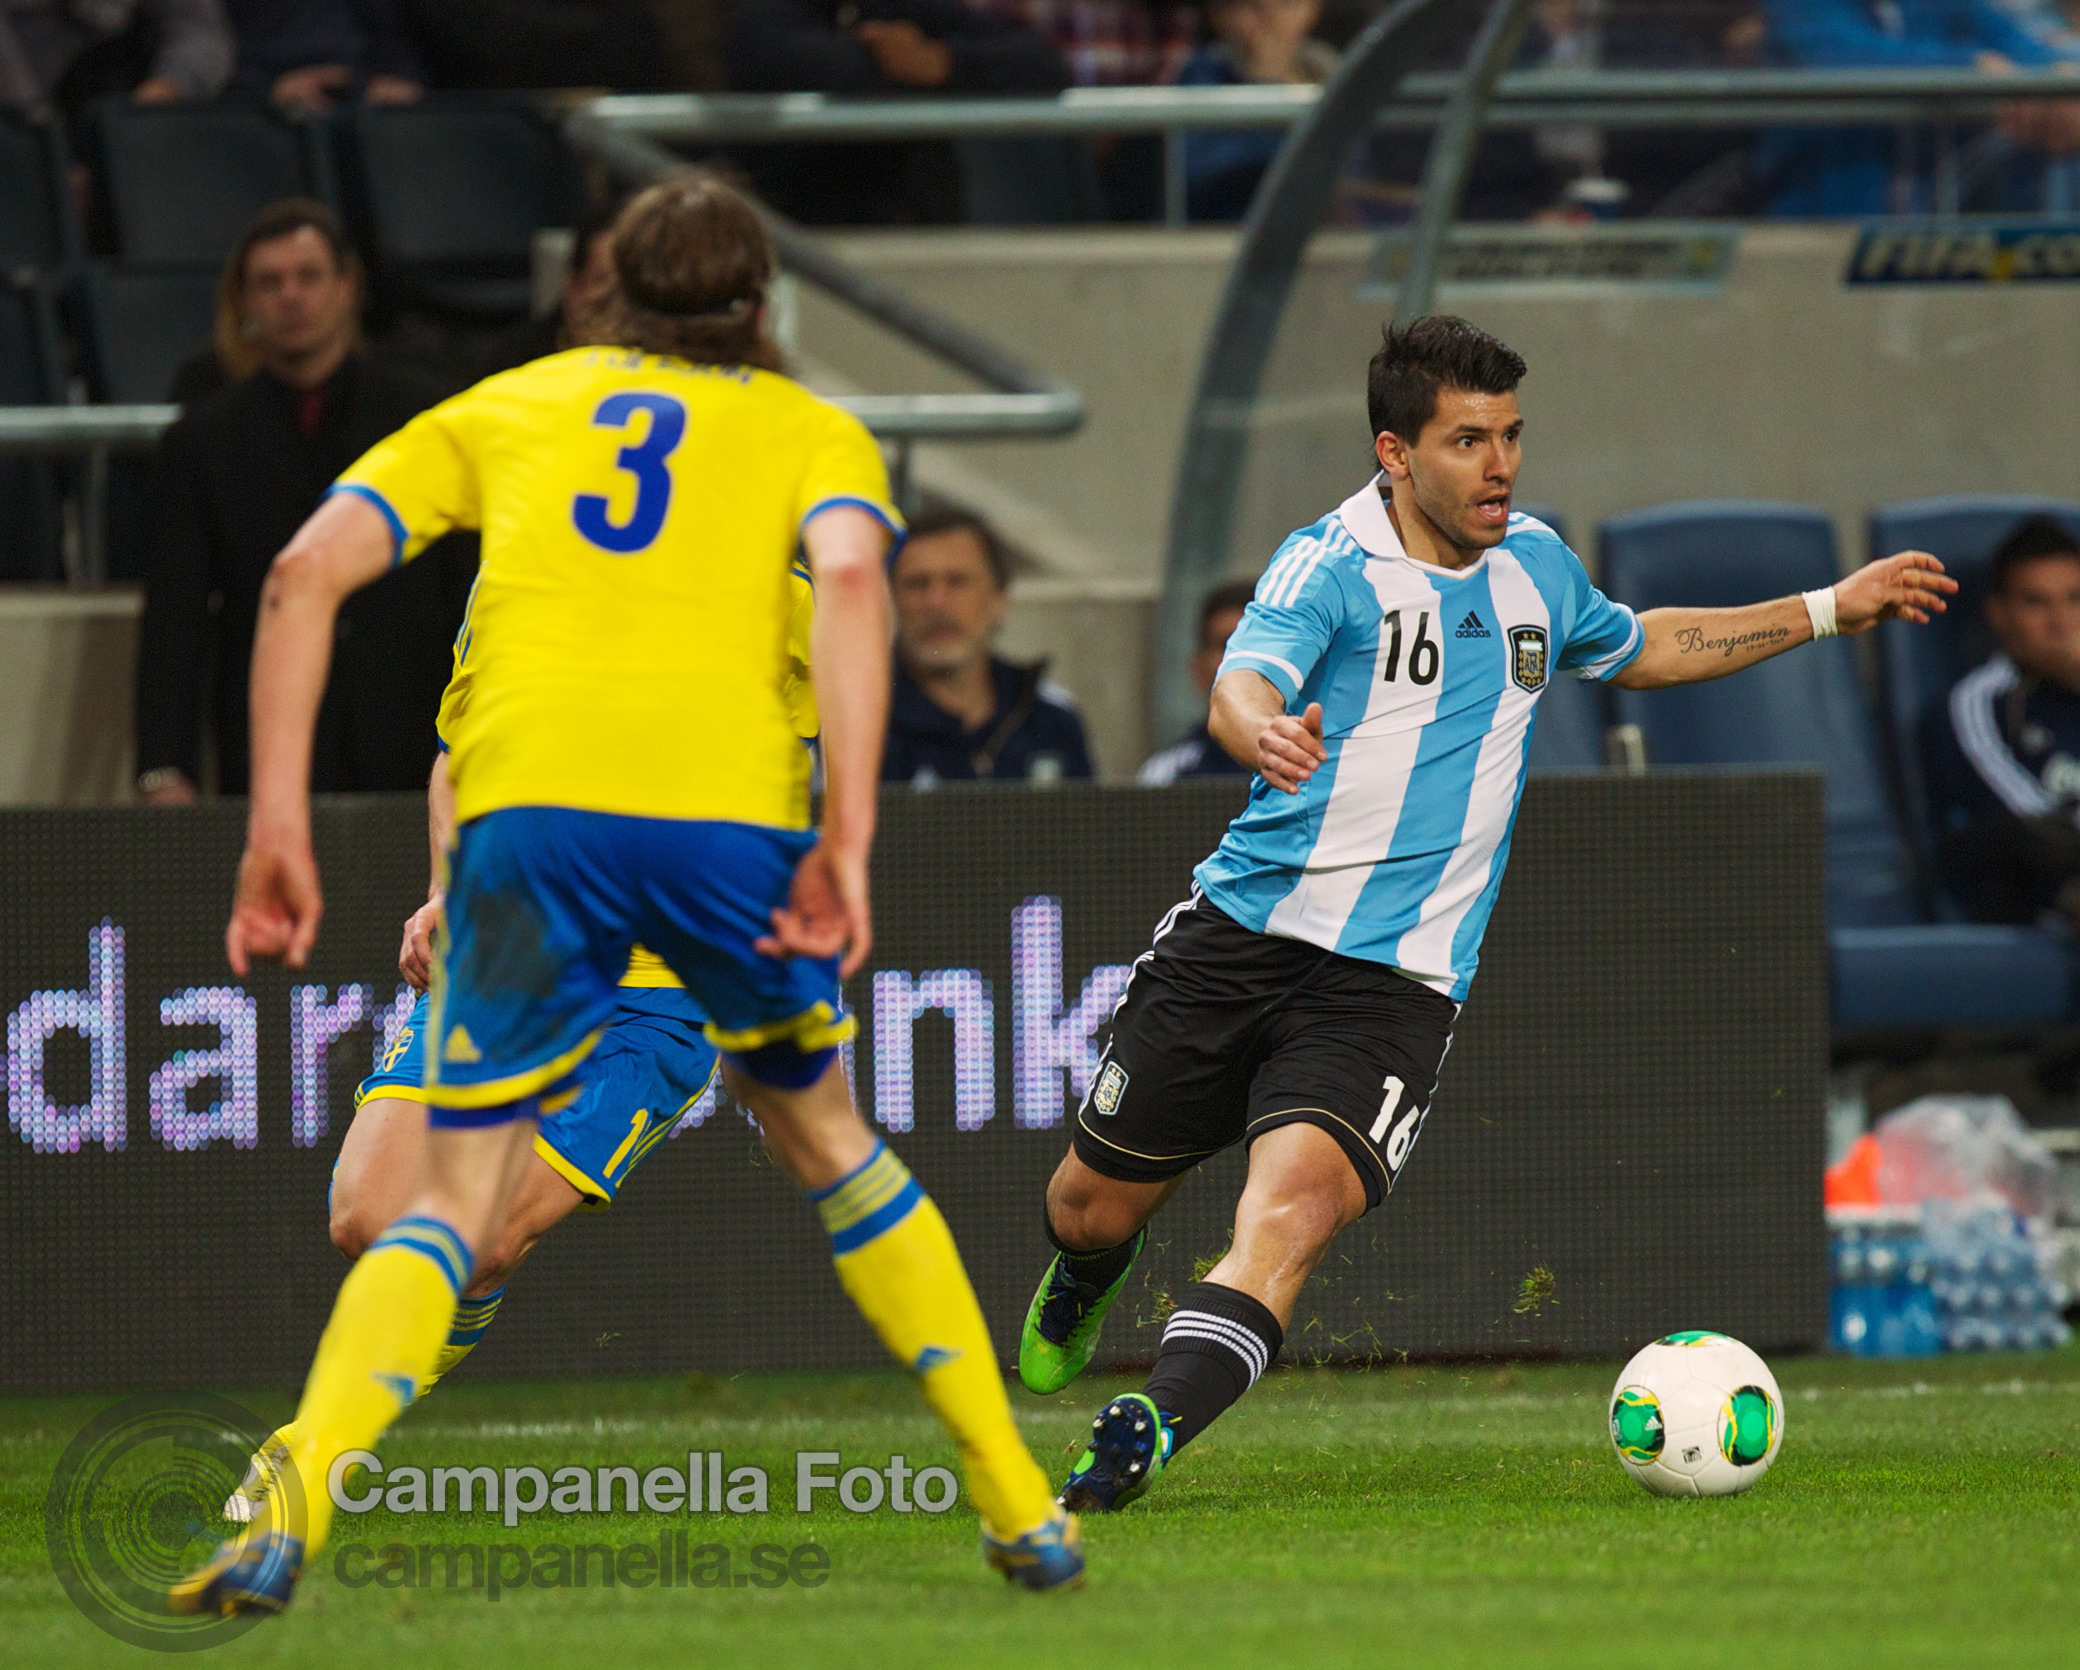 Sweden takes on Argentina - 23 of 35